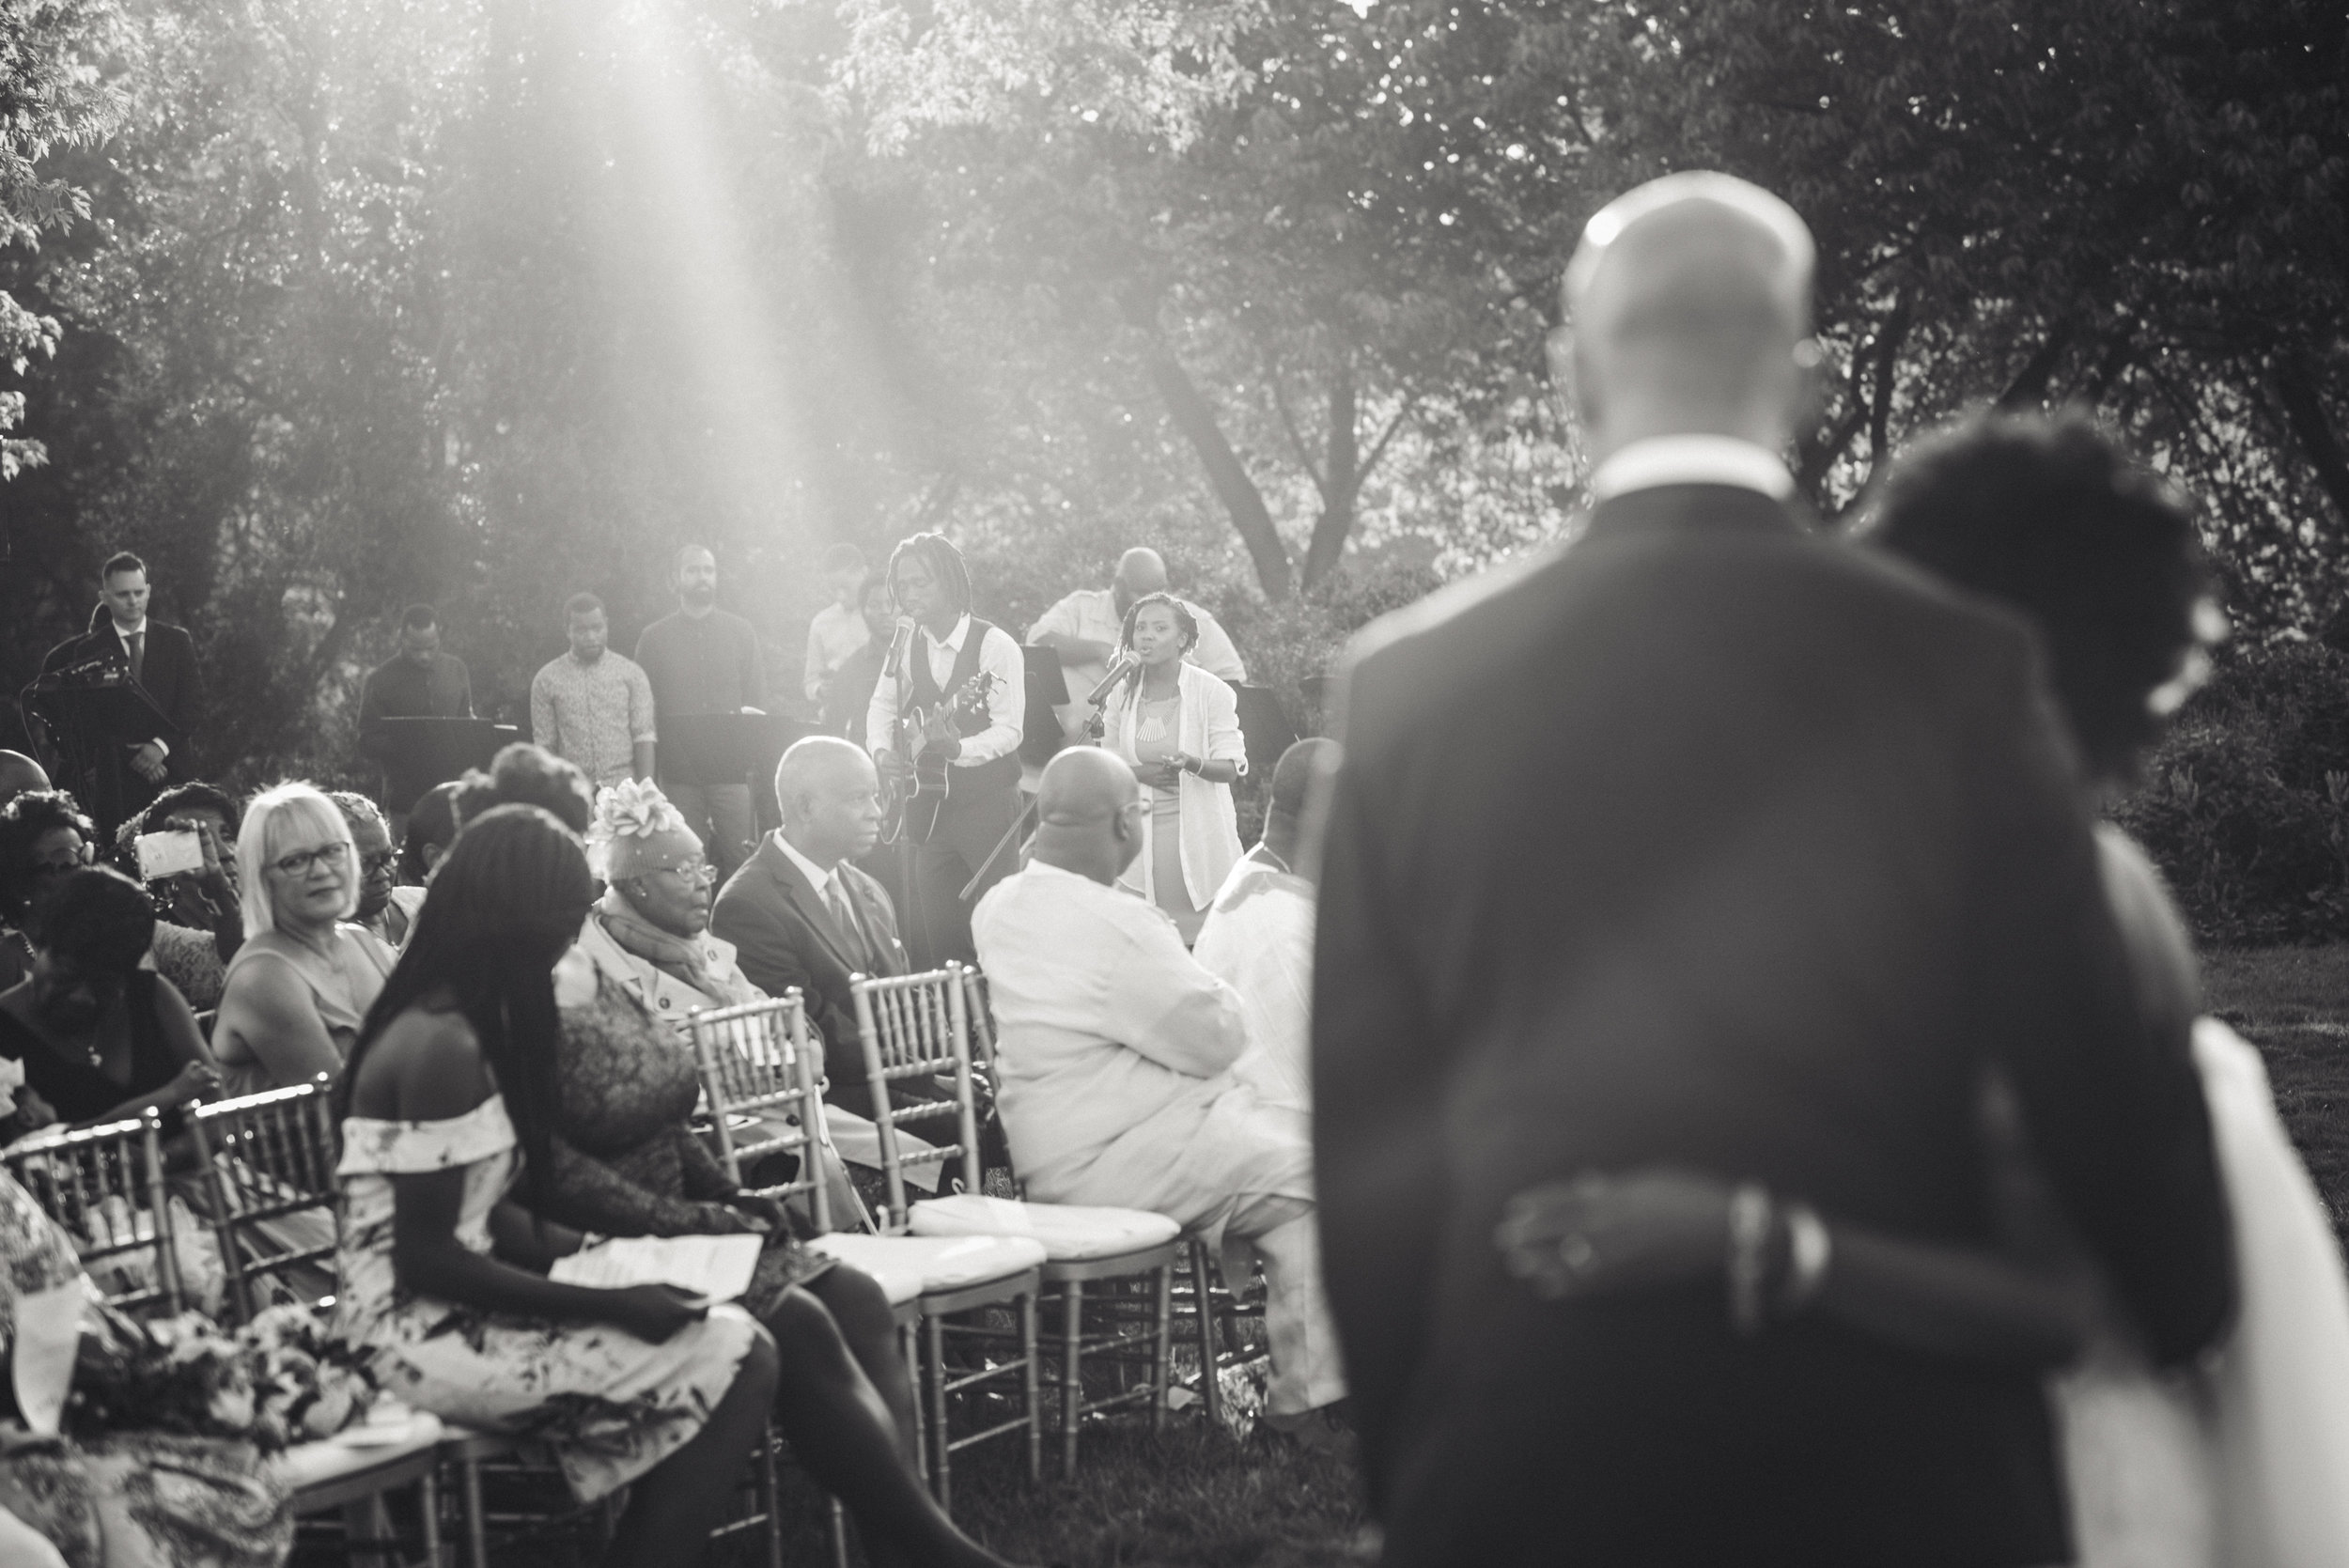 GLENVIEW MANSION WEDDING - INTIMATE WEDDING PHOTOGRAPHER - TWOTWENTY by CHI-CHI AGBIM-243.jpg